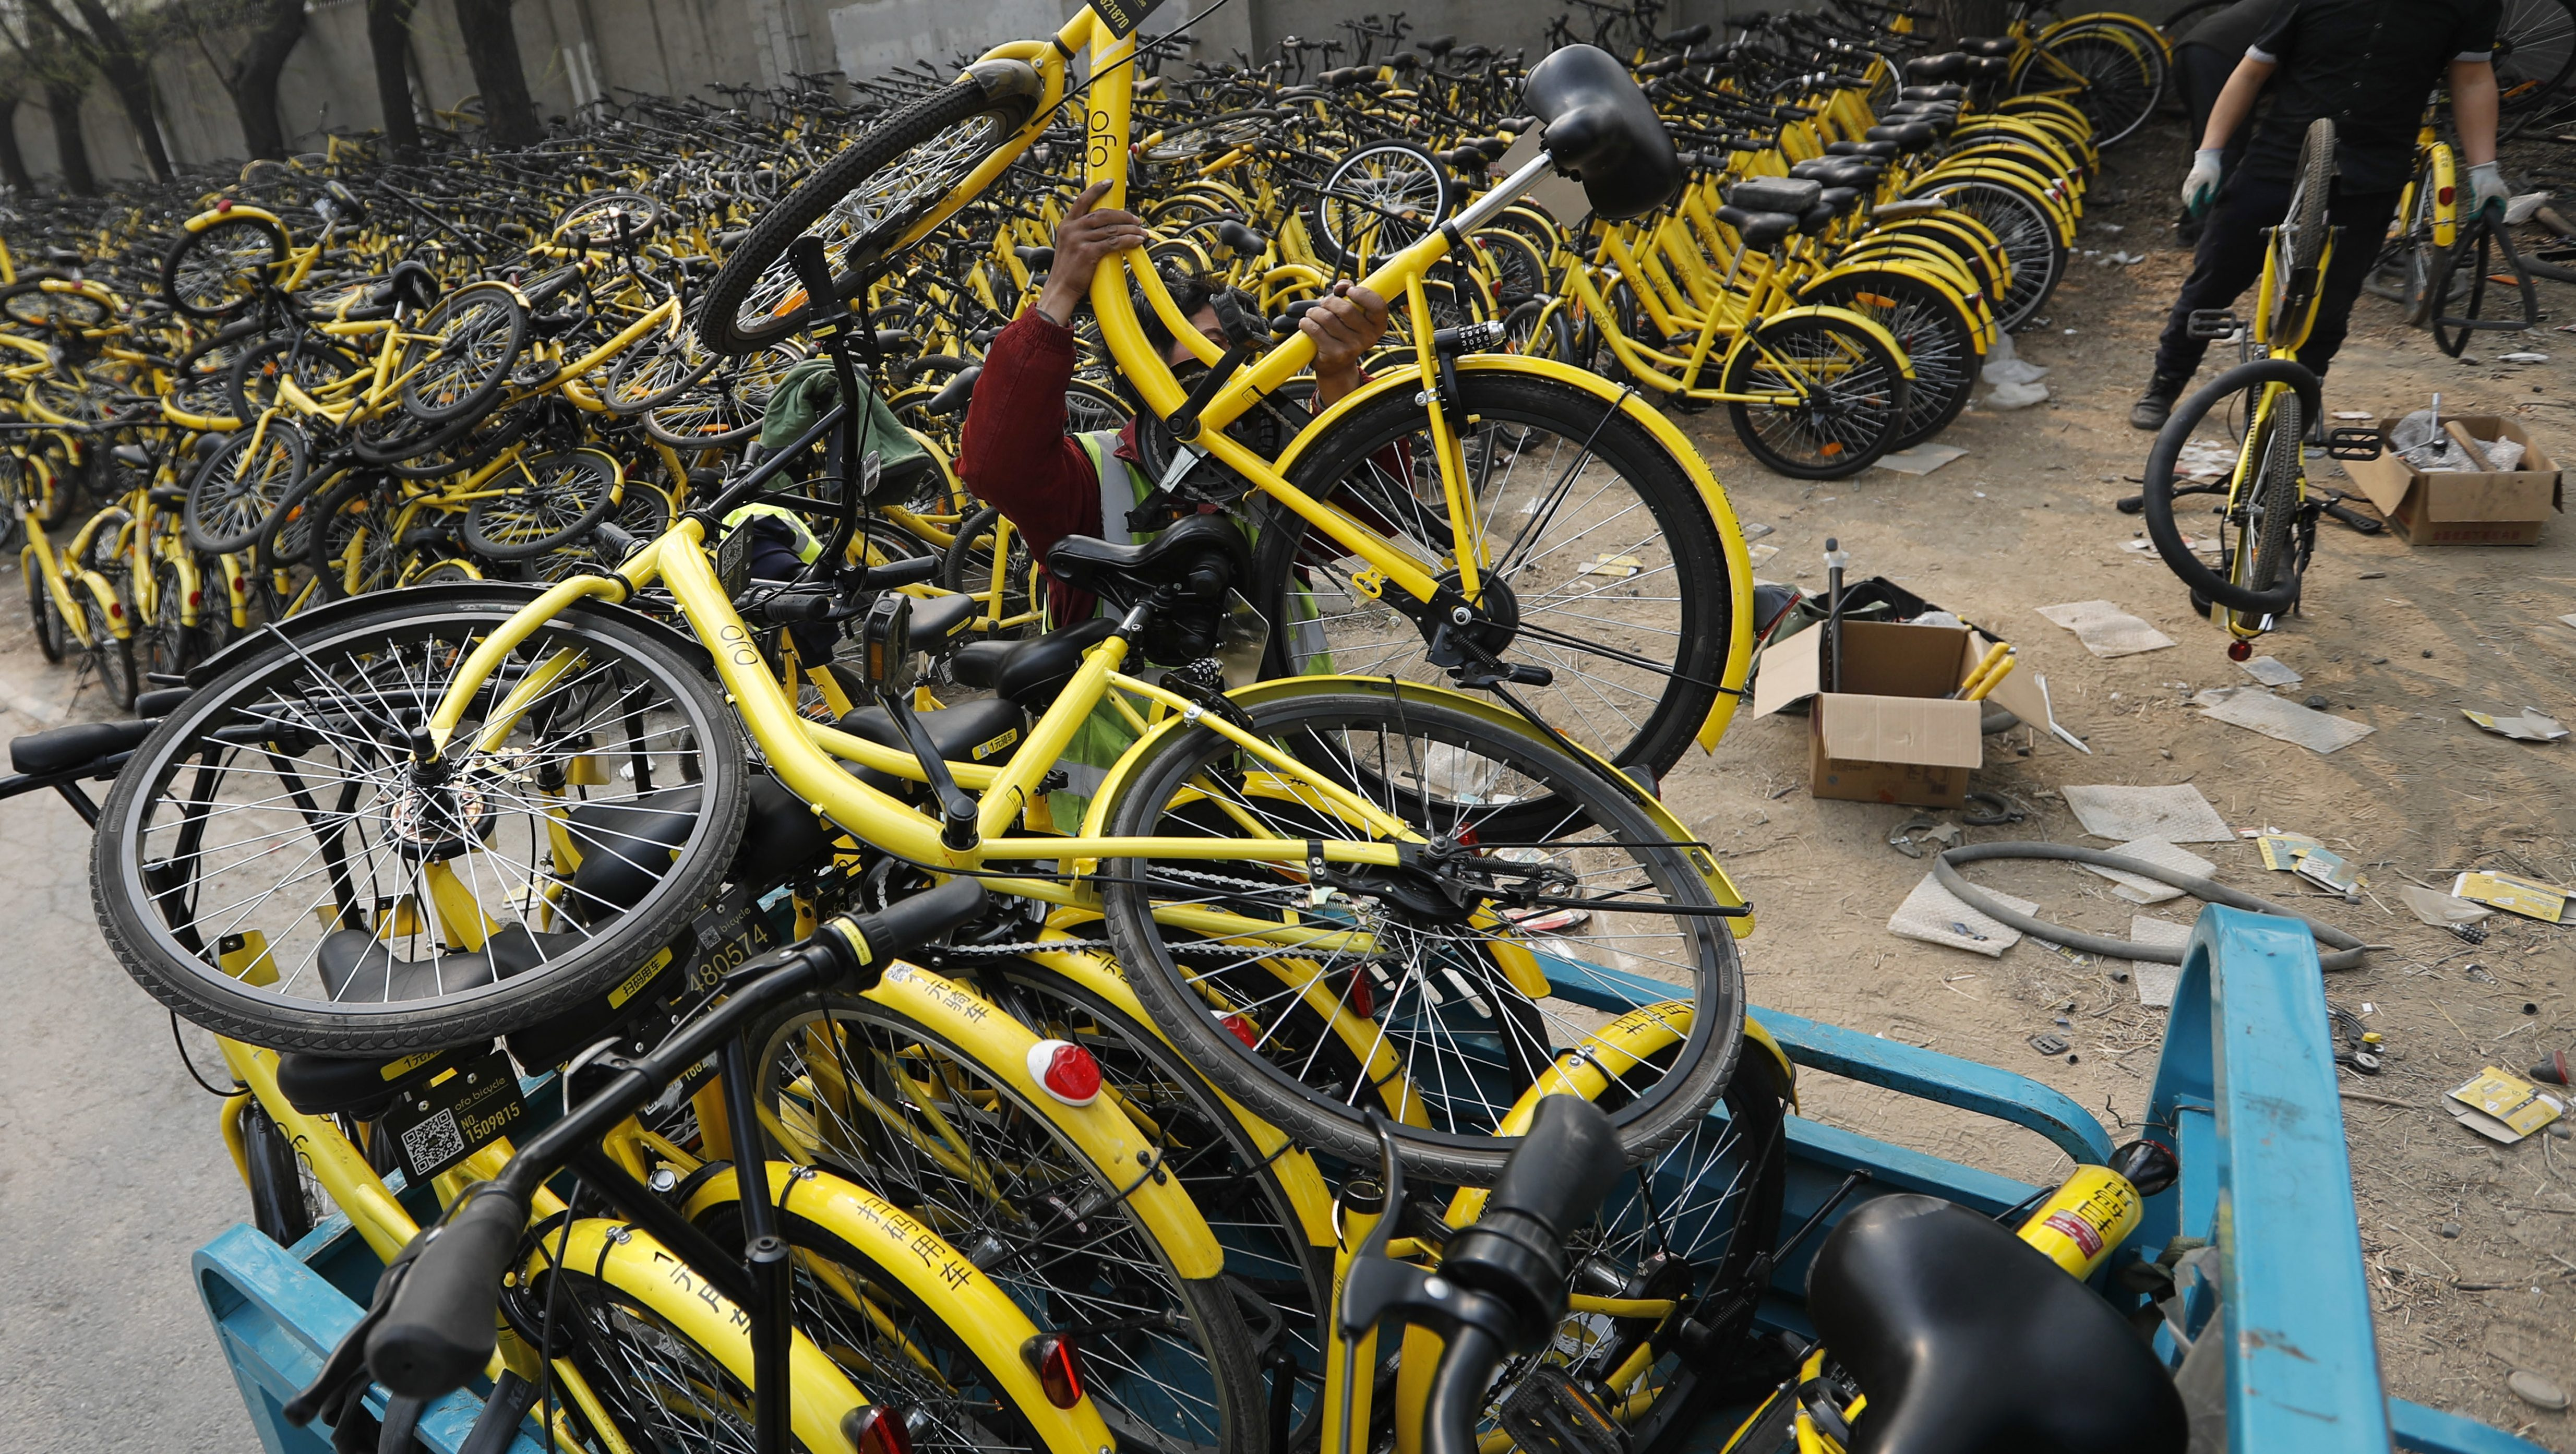 In this Sunday, March 19, 2017 photo, a worker from the bike-sharing company Ofo unloads damaged bicycles from a tricycle at a repair station in Beijing, China. As many as 2.2 million of these two-wheelers have been deployed, which are available for rent for as little as 7 cents a ride, in the latest symbol of heavy spending in China's internet sector where startups are in a race to attract more users to their services. (AP Photo/Andy Wong)